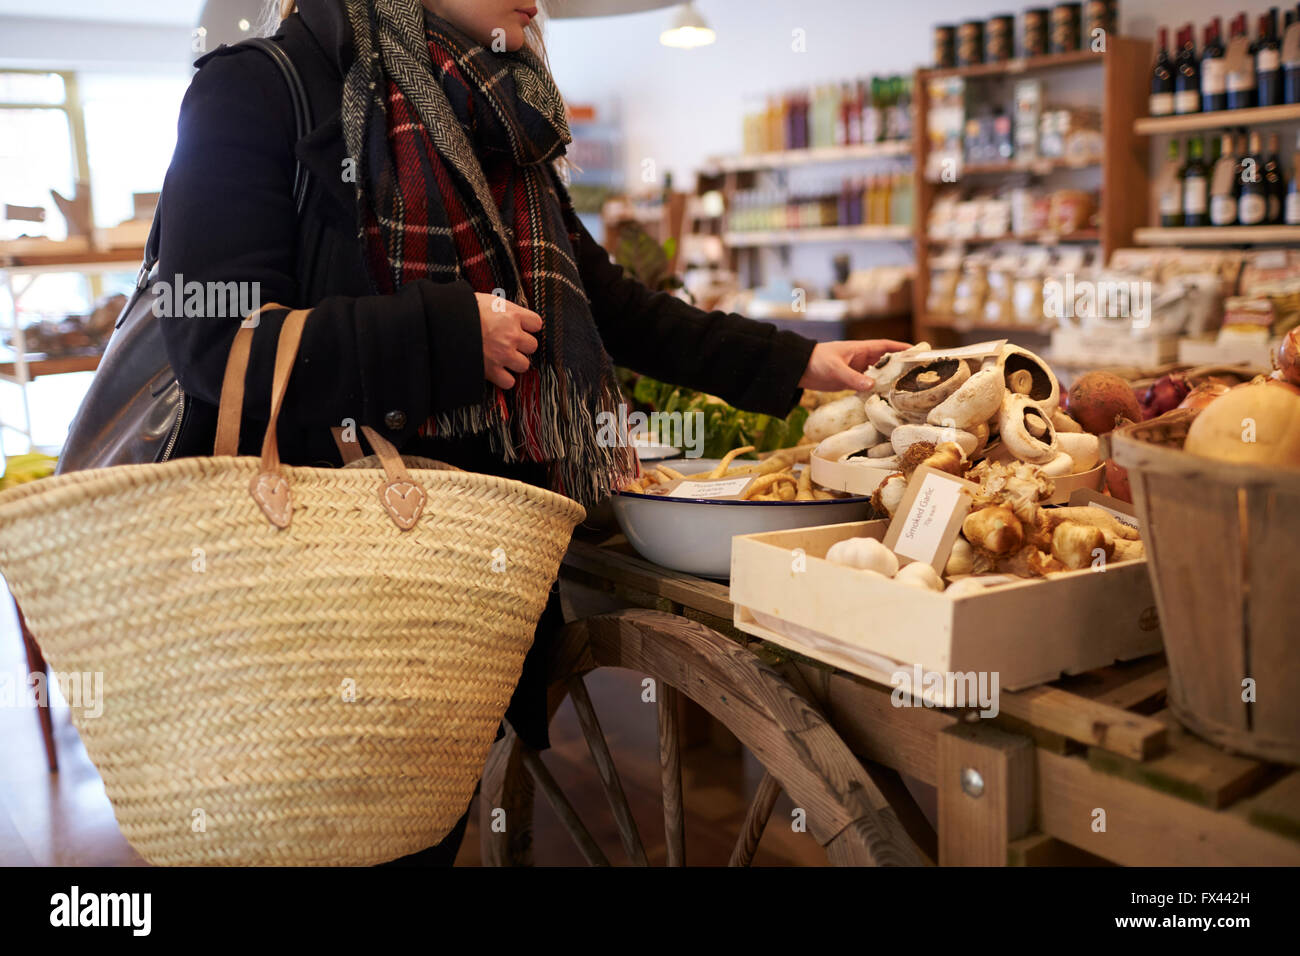 Close Up Of Woman Shopping For Produce In Delicatessen - Stock Image